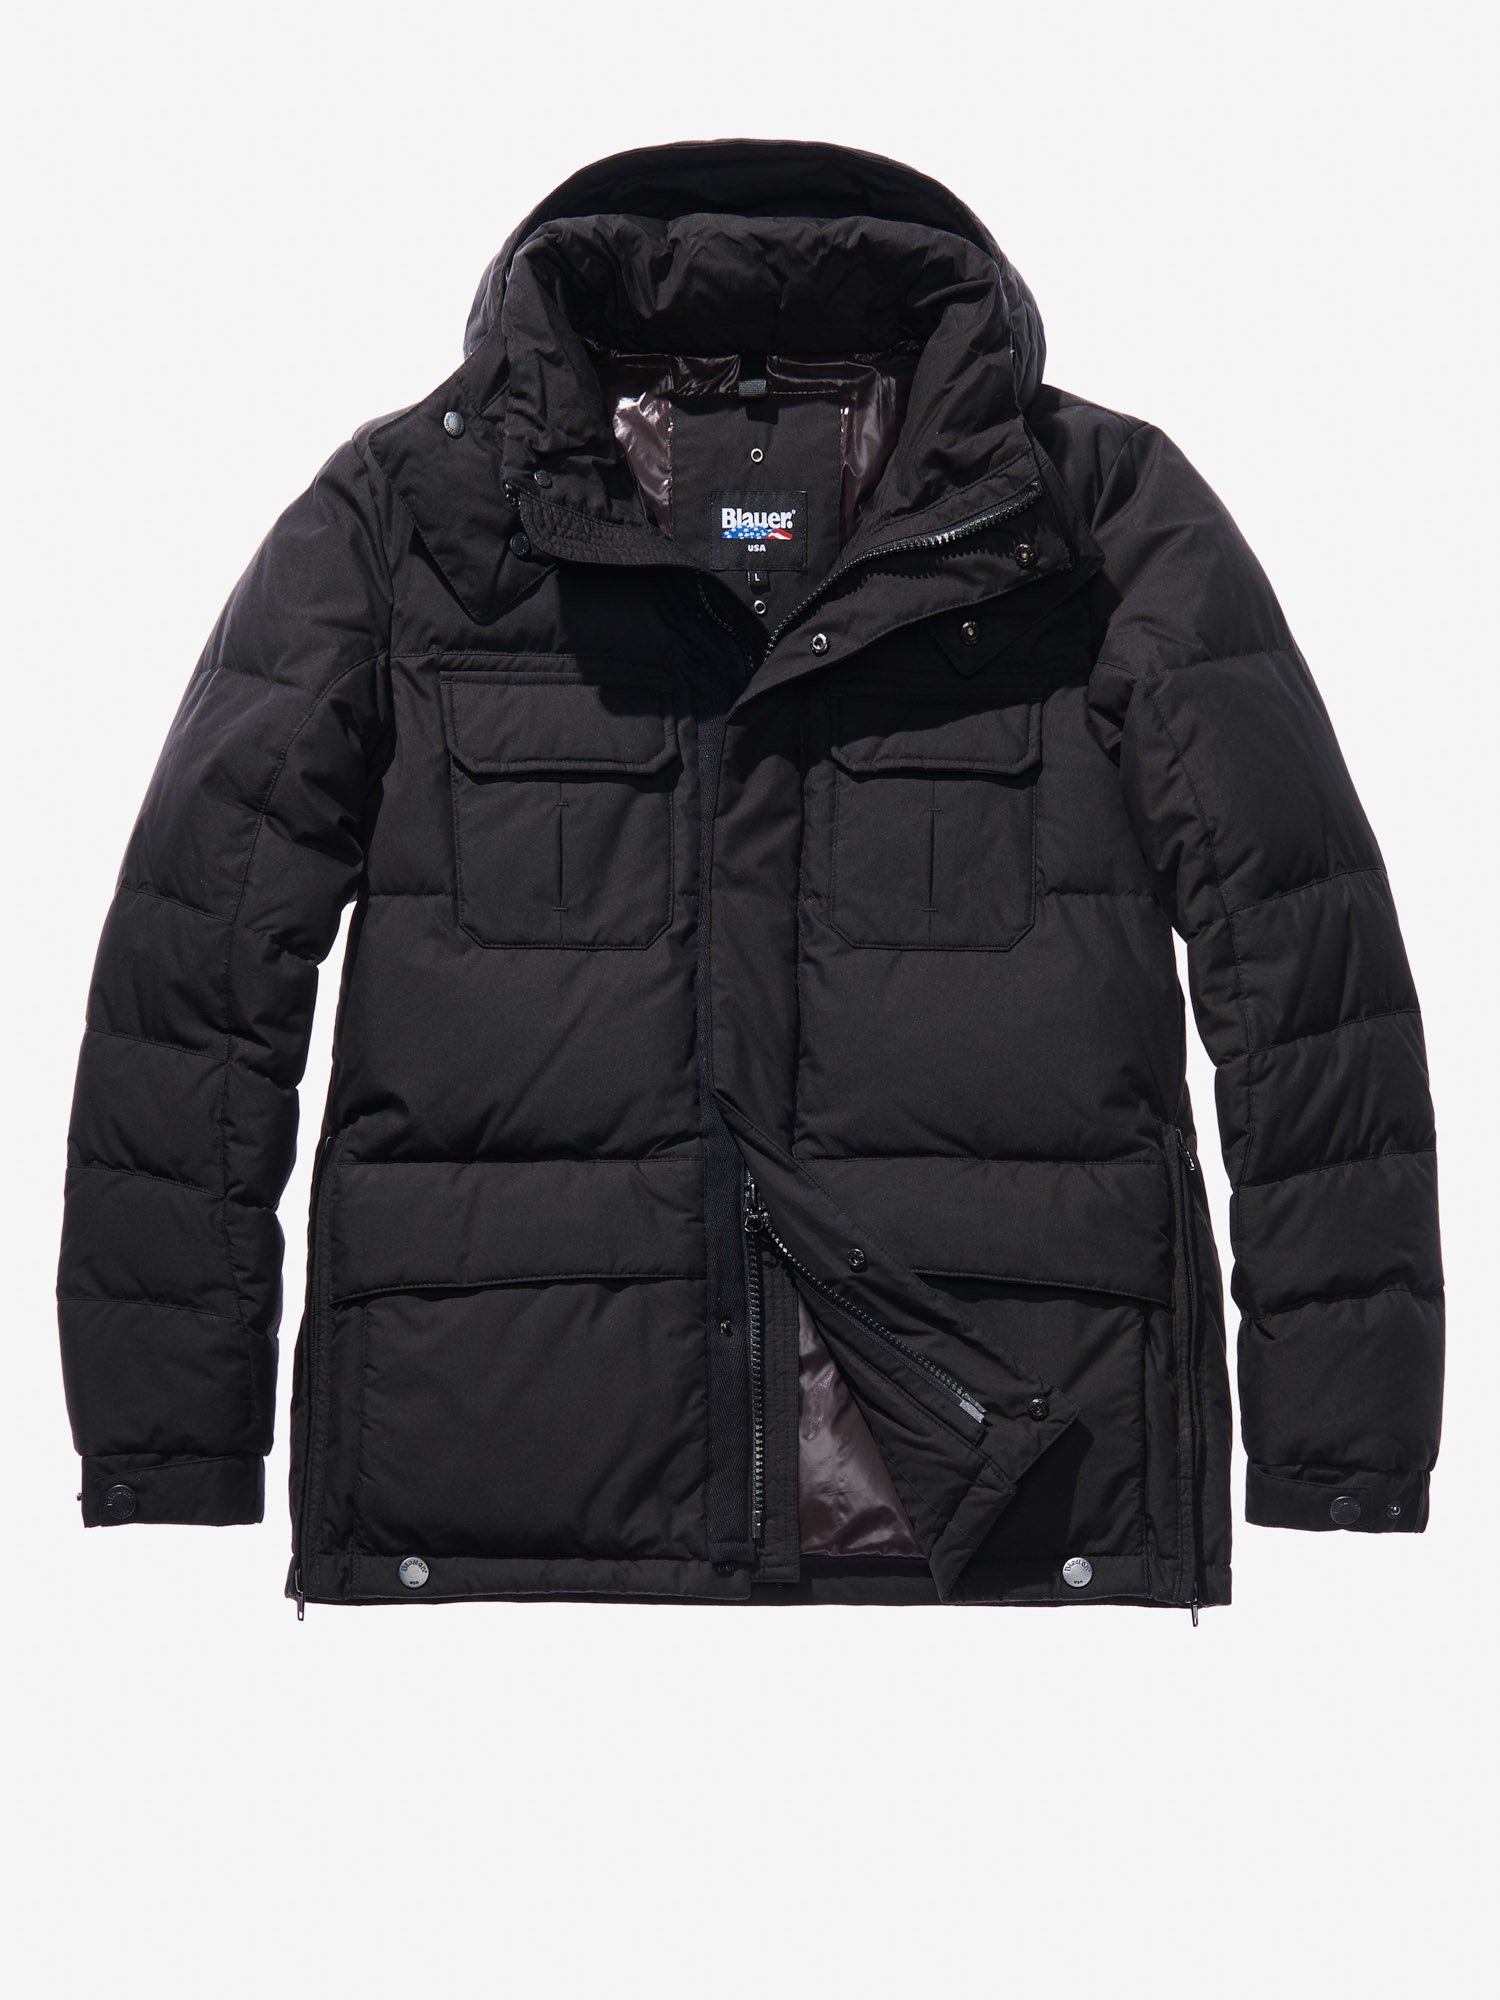 GABRIELE COTTON AND NYLON POLICE-STYLE DOWN COAT - Blauer